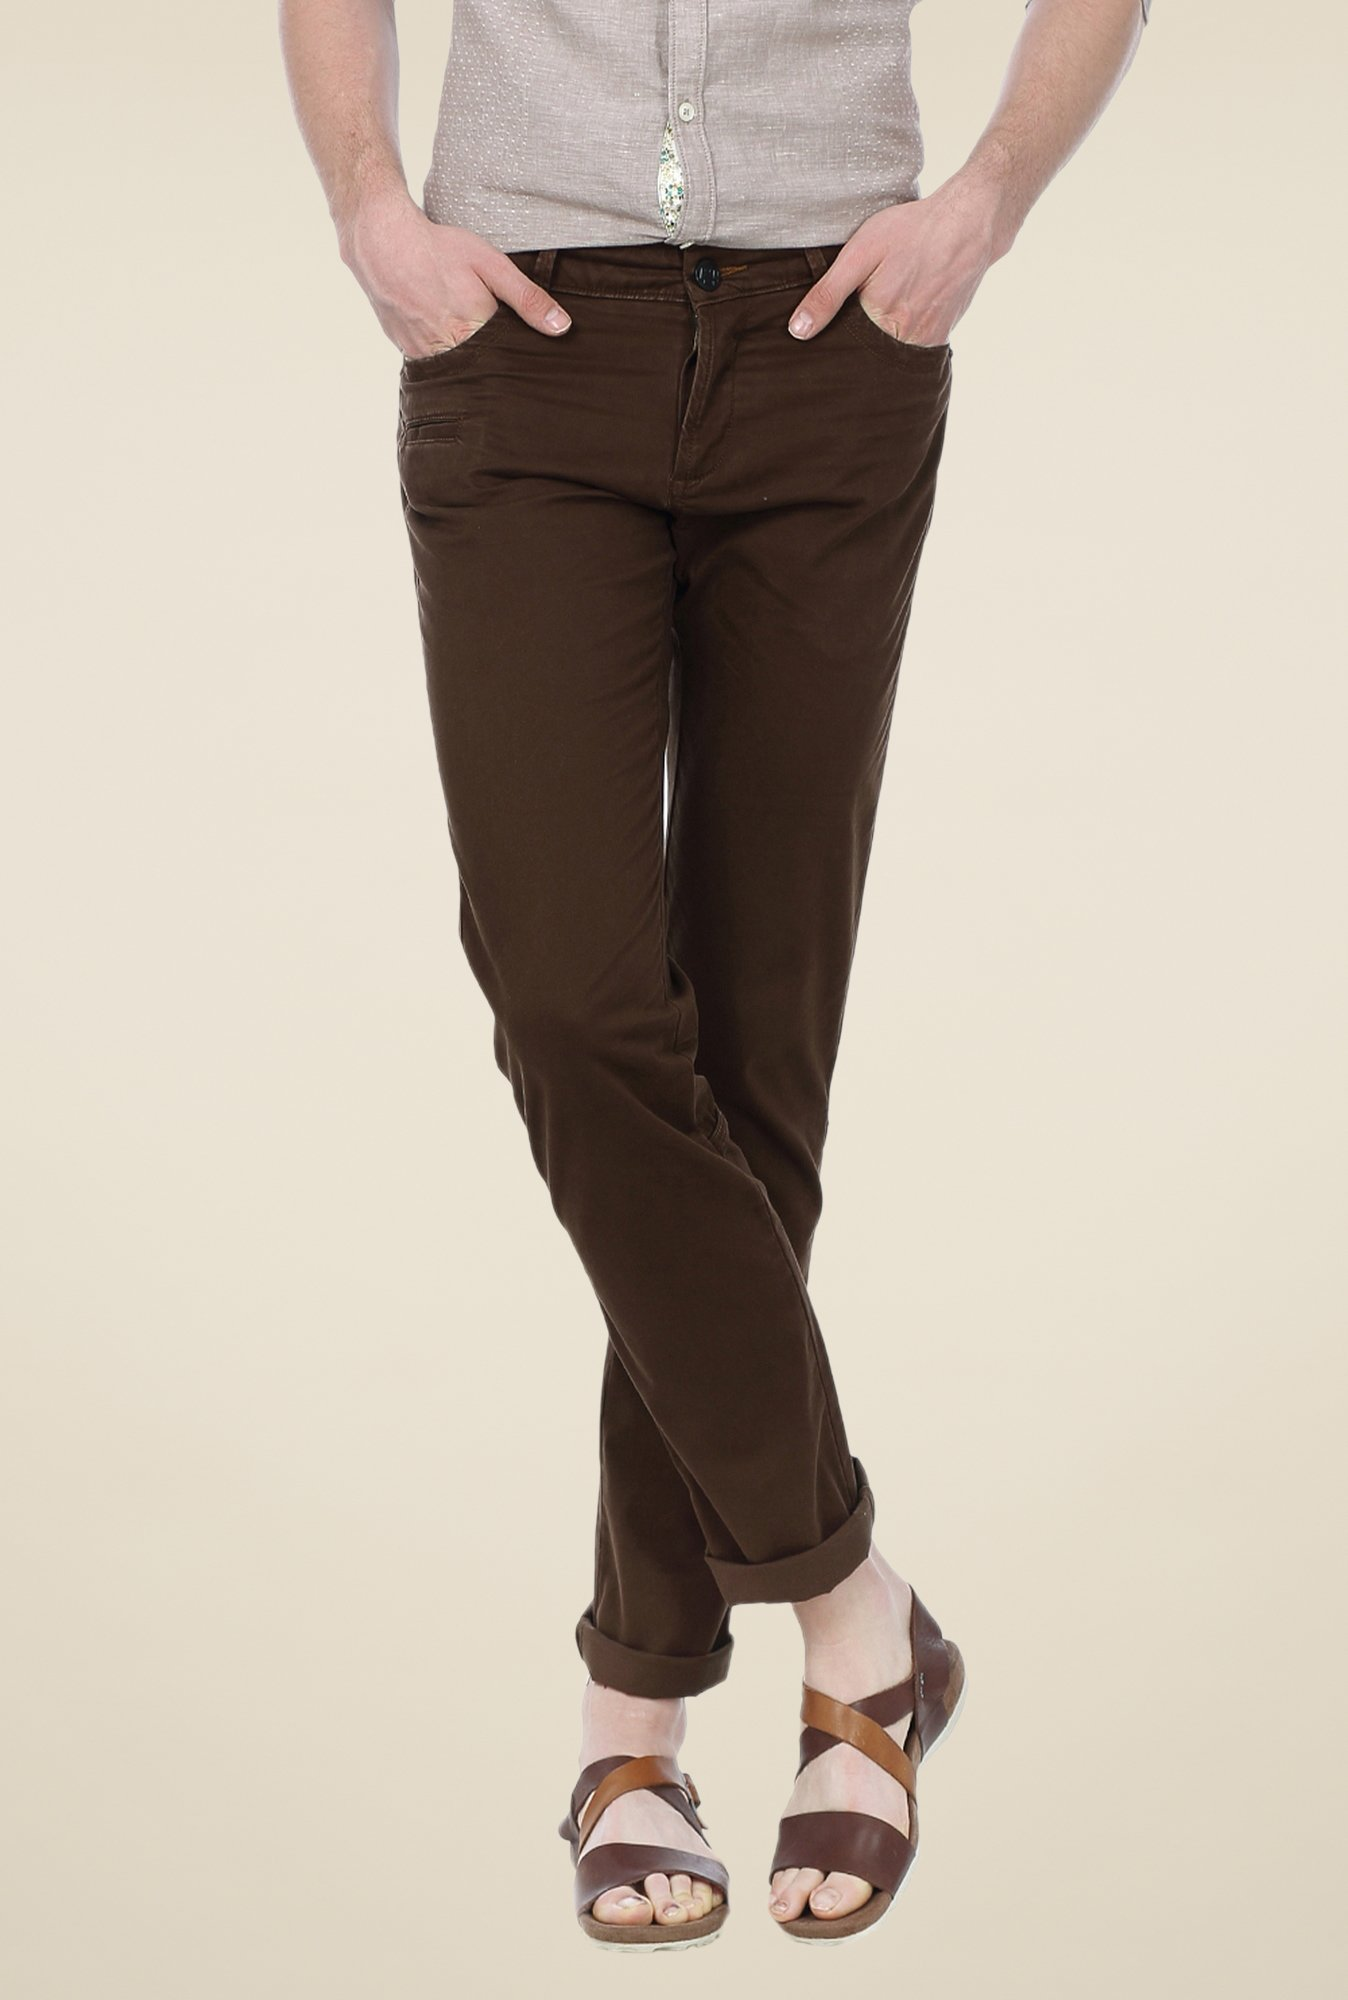 Basics Brown Solid Trousers